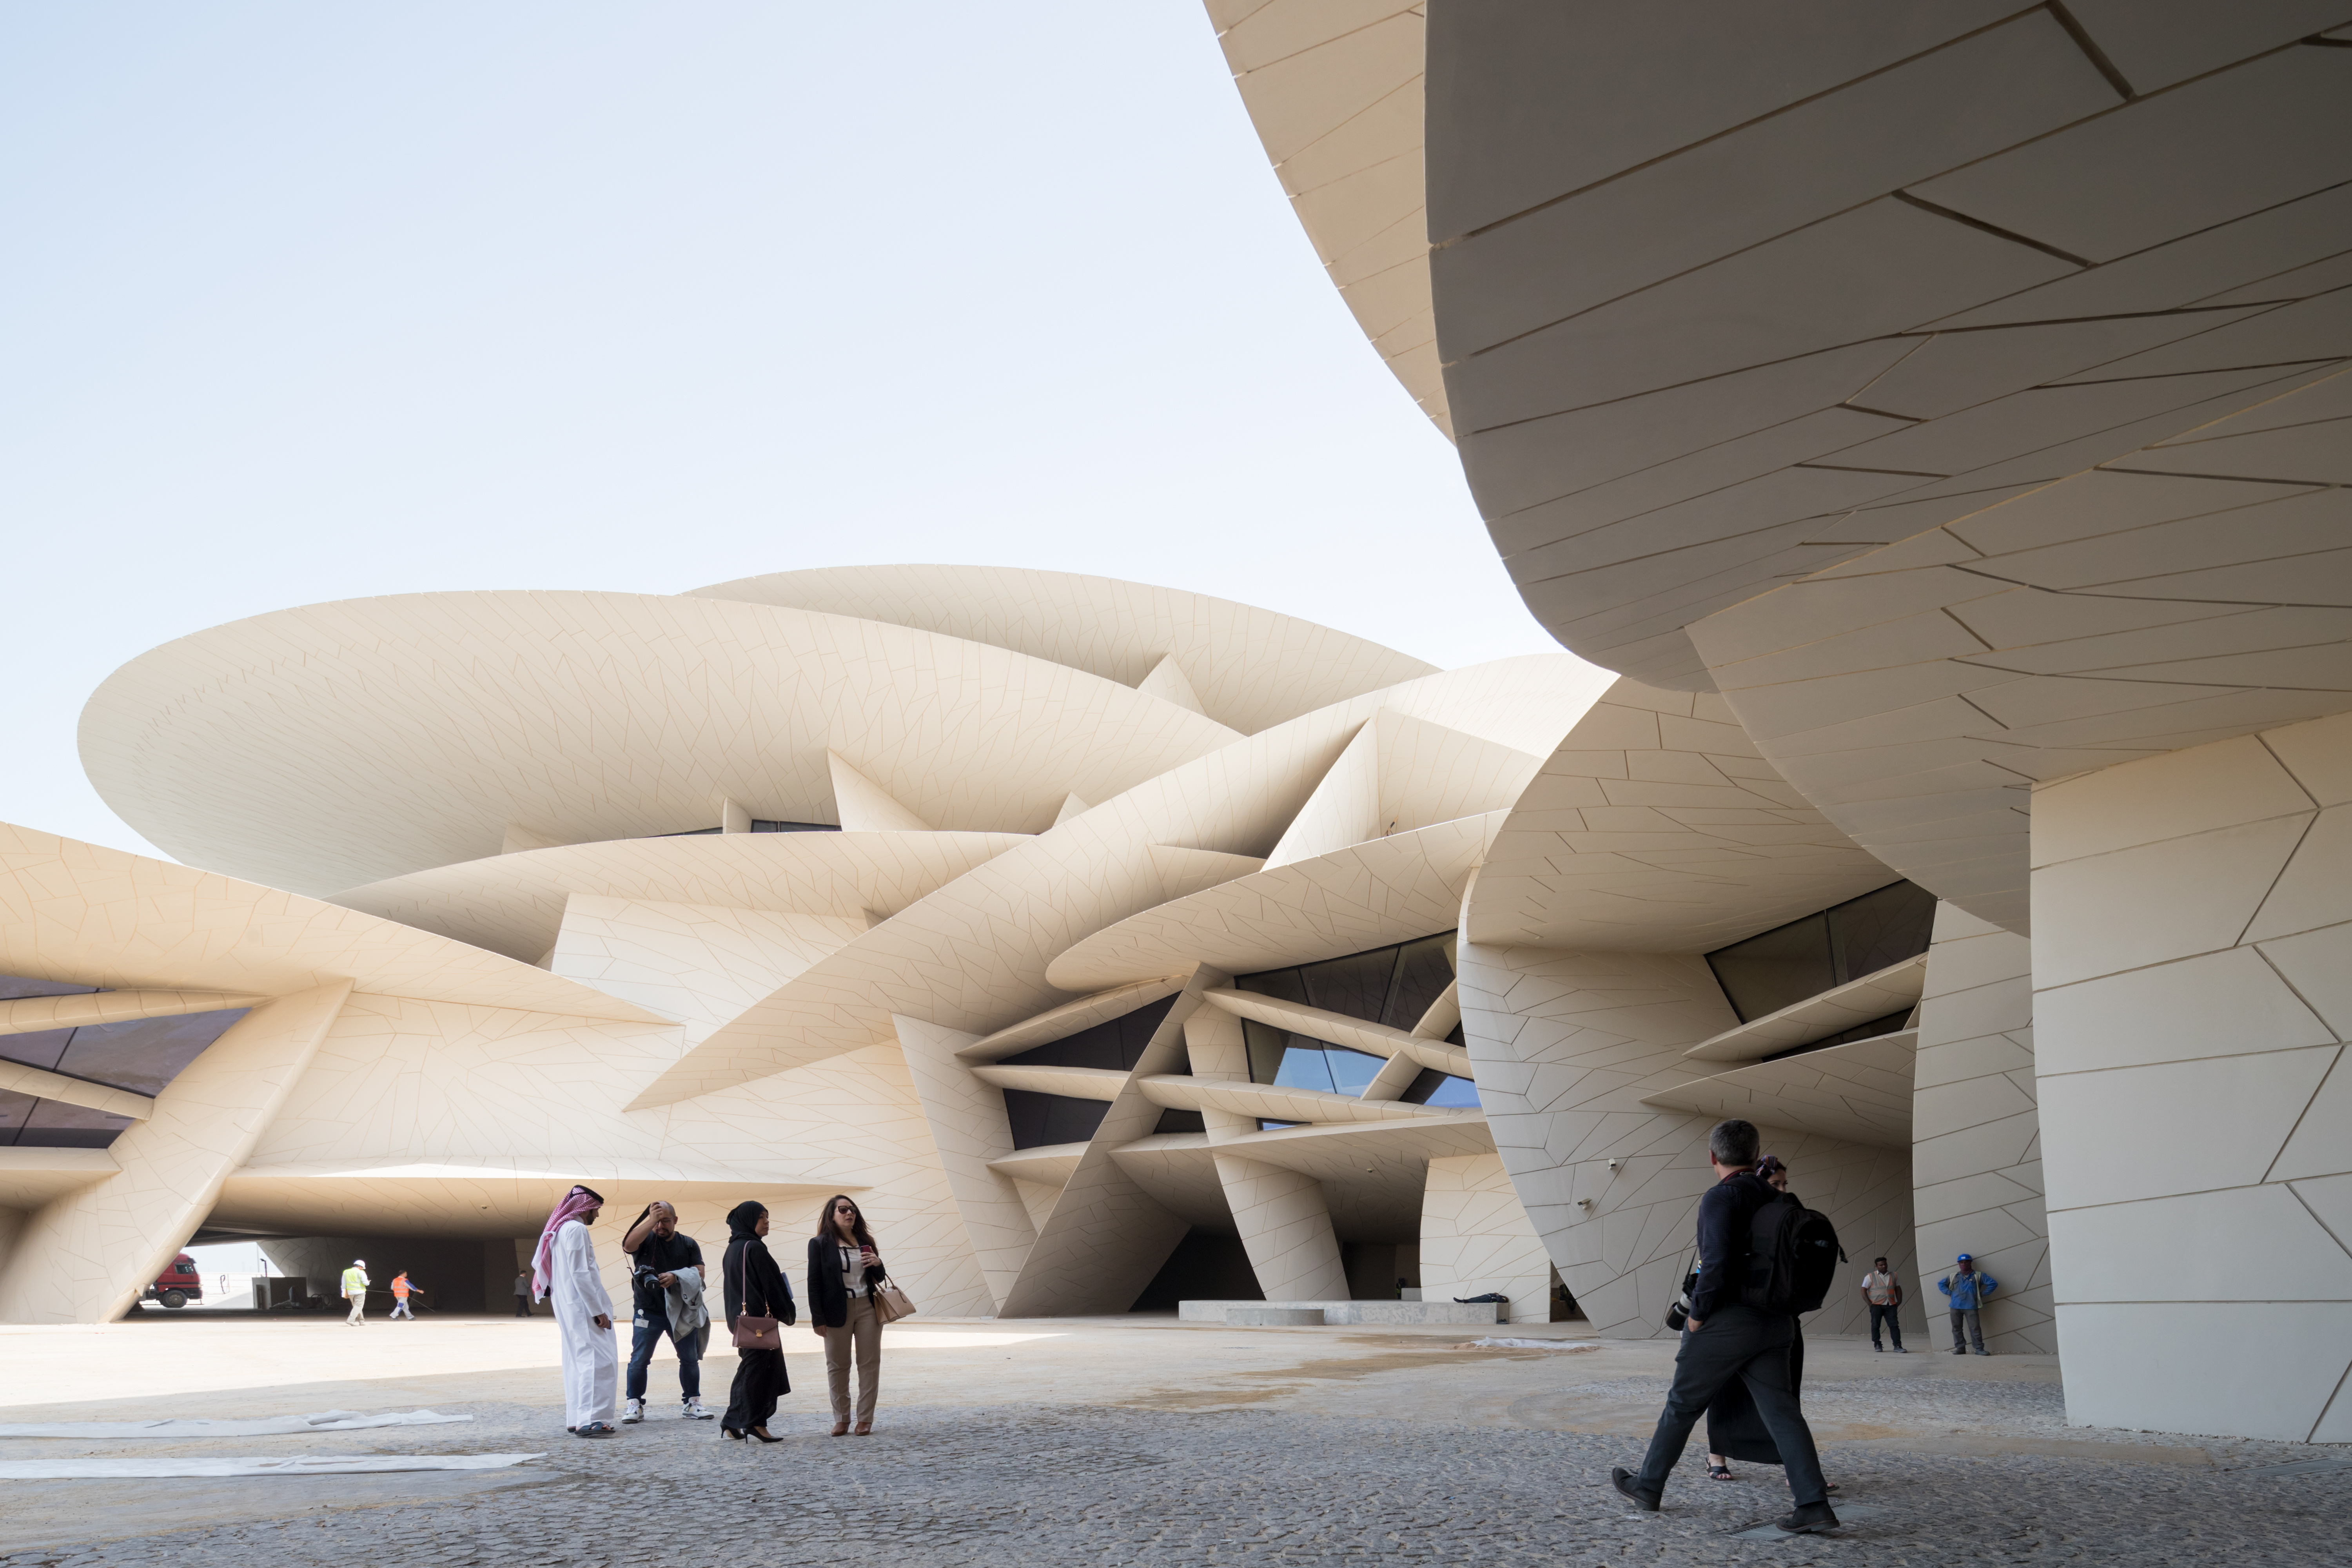 Museum's complex structure comprises of large interlocking disks of different diameters and curvatures. Photo courtesy: National Museum of Qatar